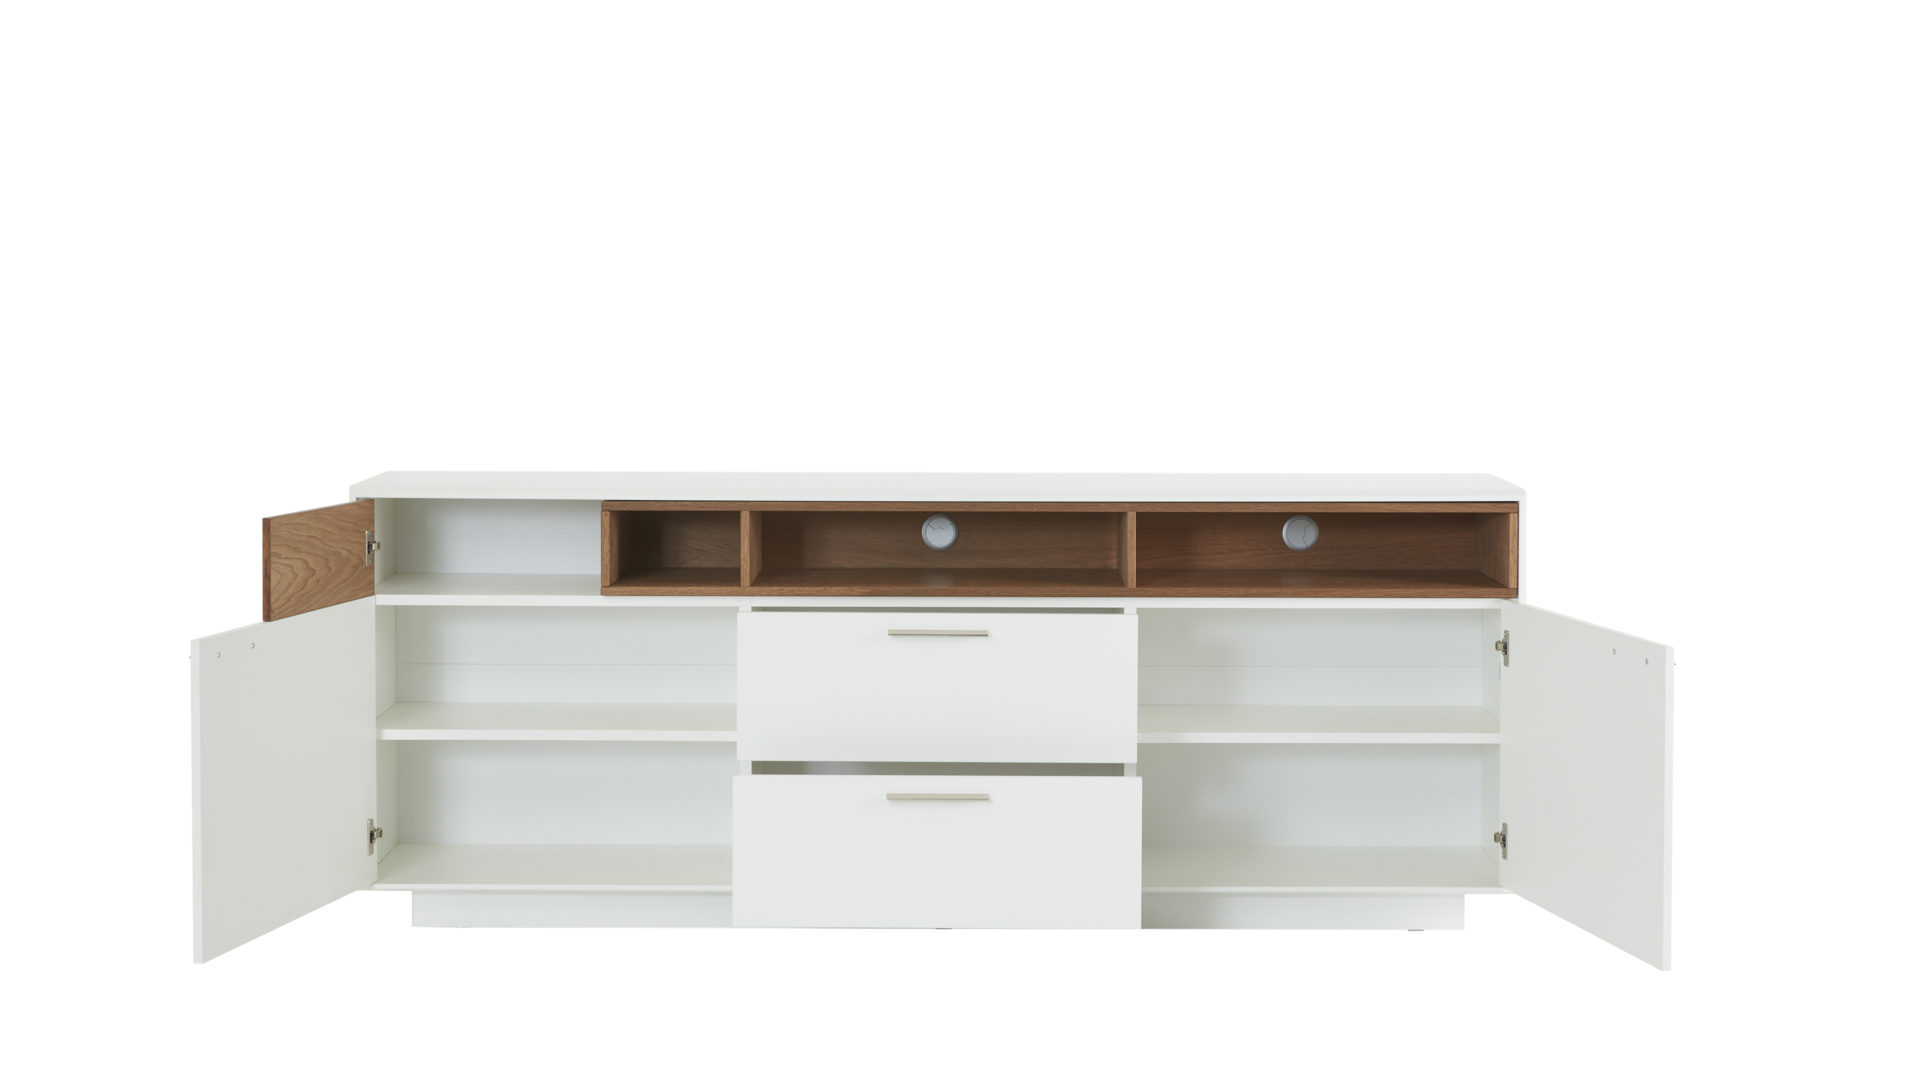 Offenes Sideboard Interliving Wohnzimmer Serie 2102 Sideboard 510266 Dunkles